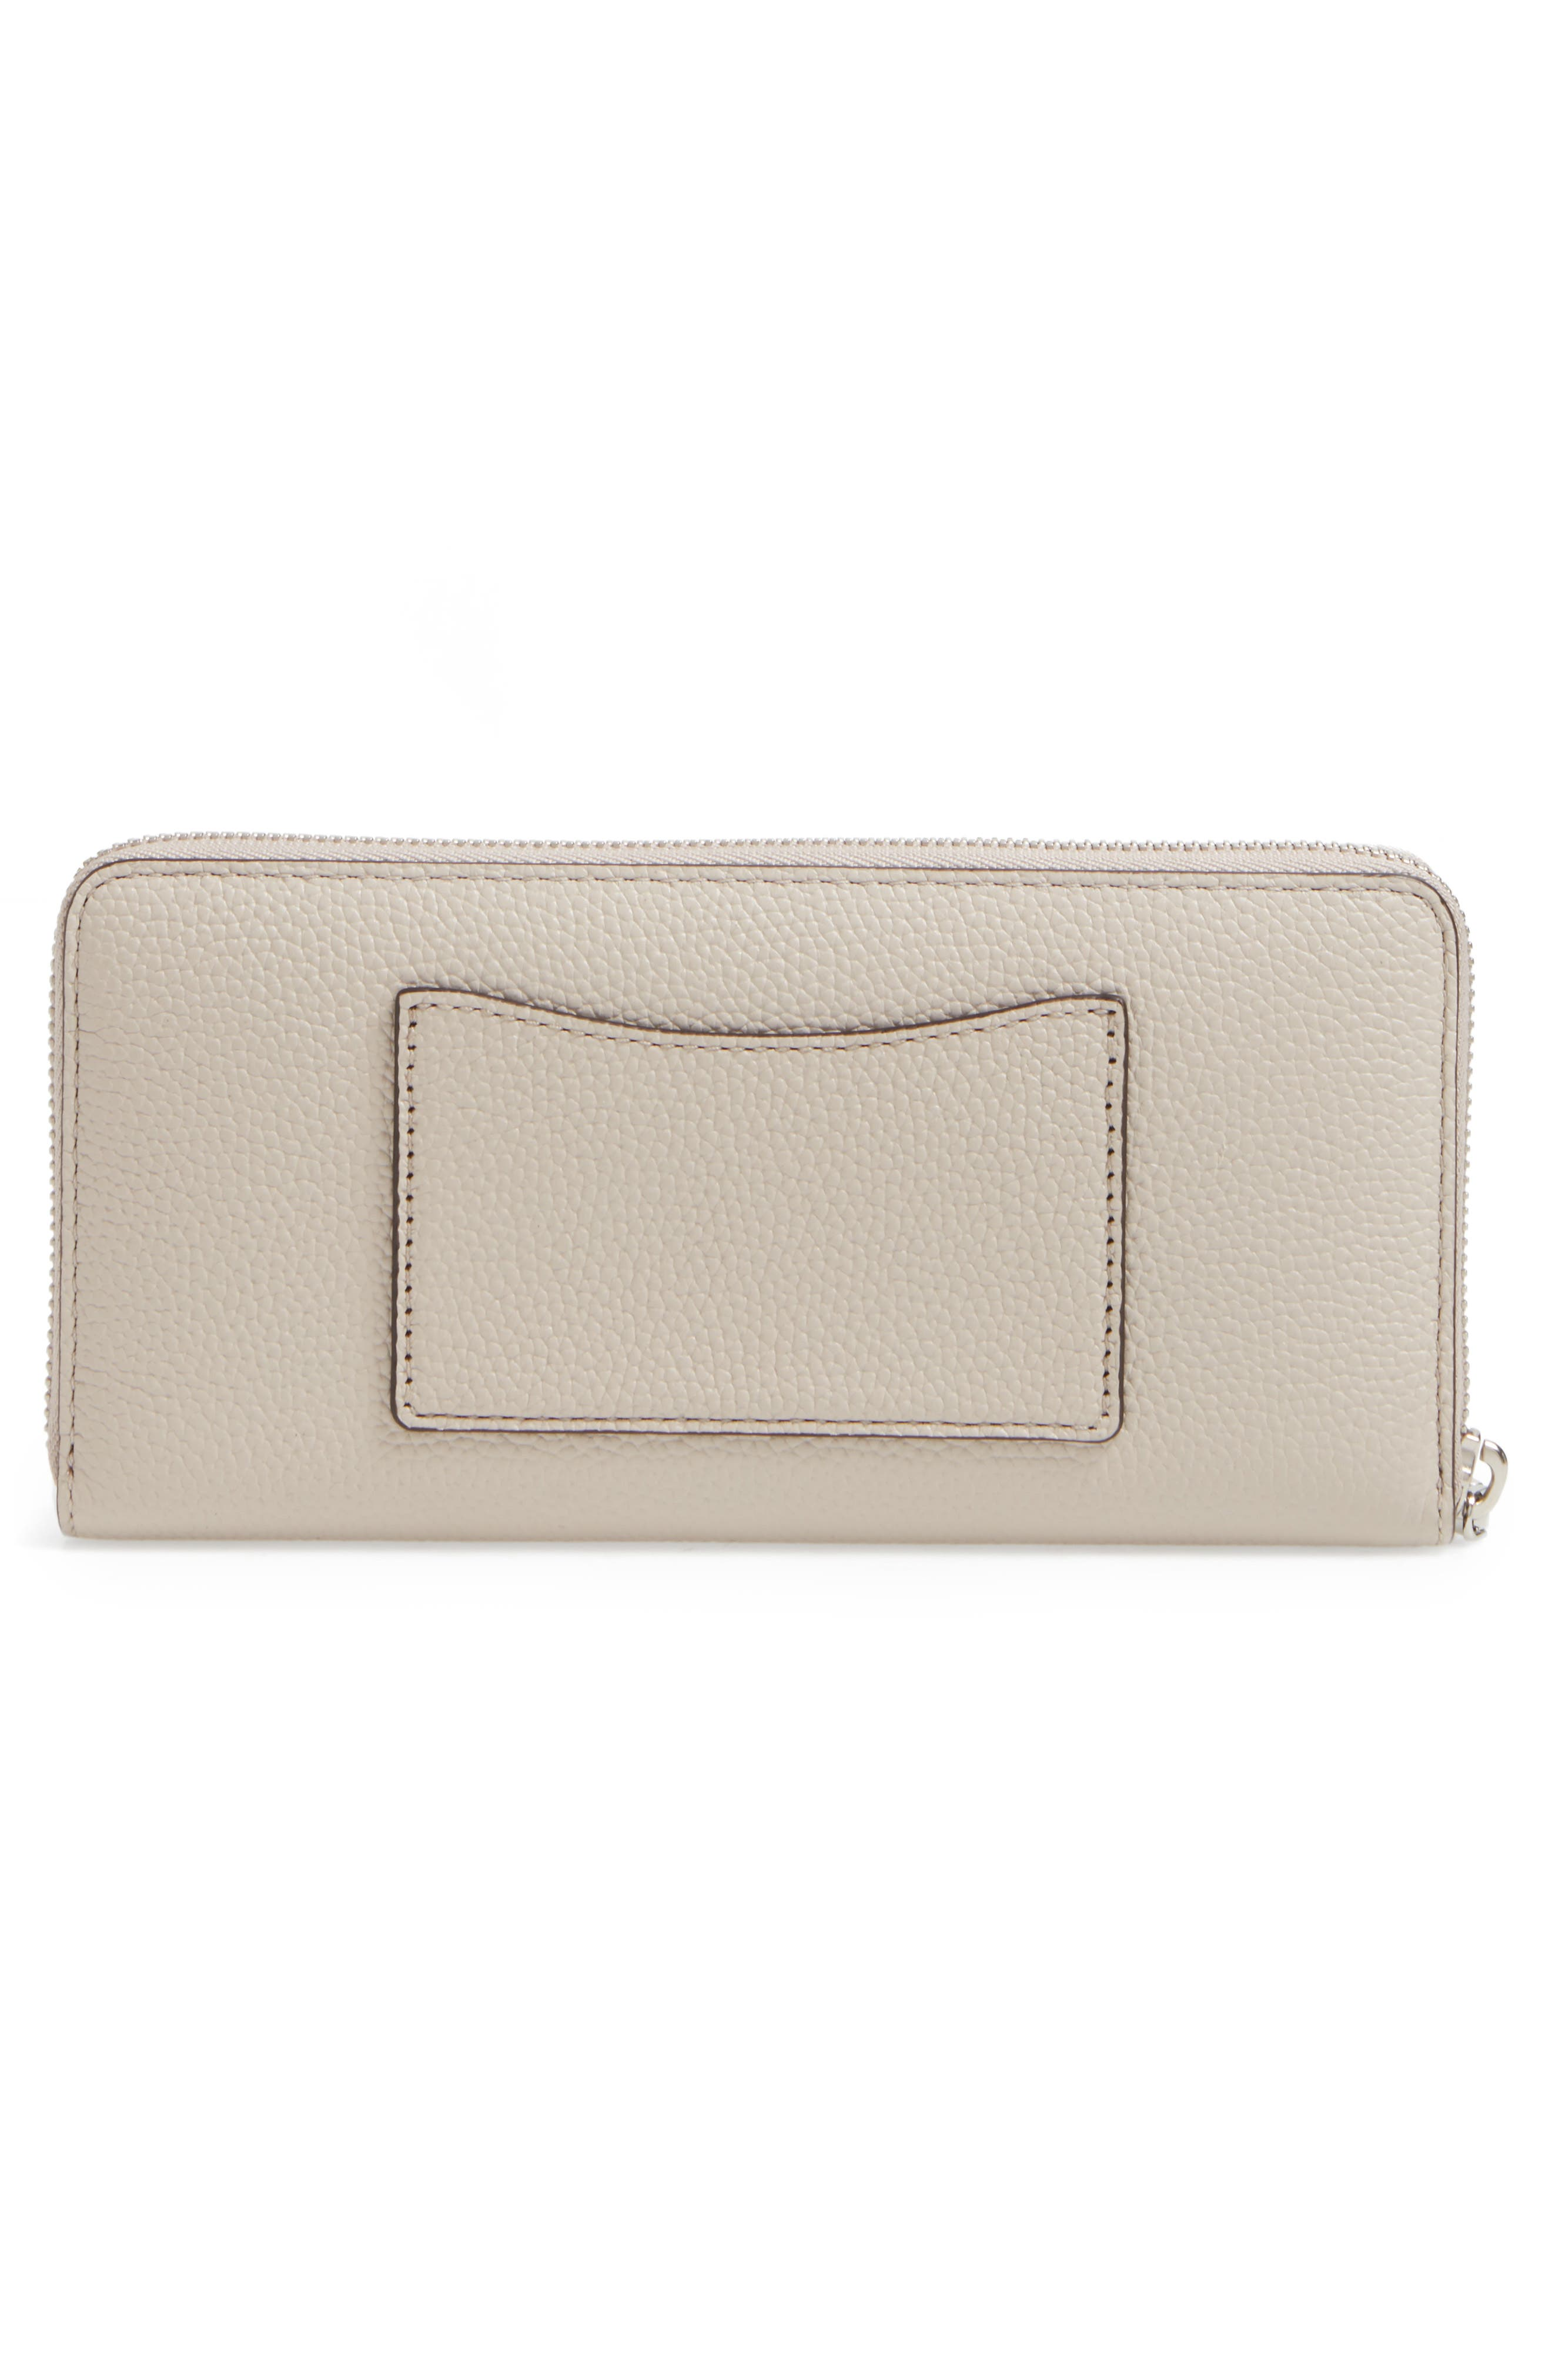 Mercer Leather Continental Wallet,                             Alternate thumbnail 10, color,